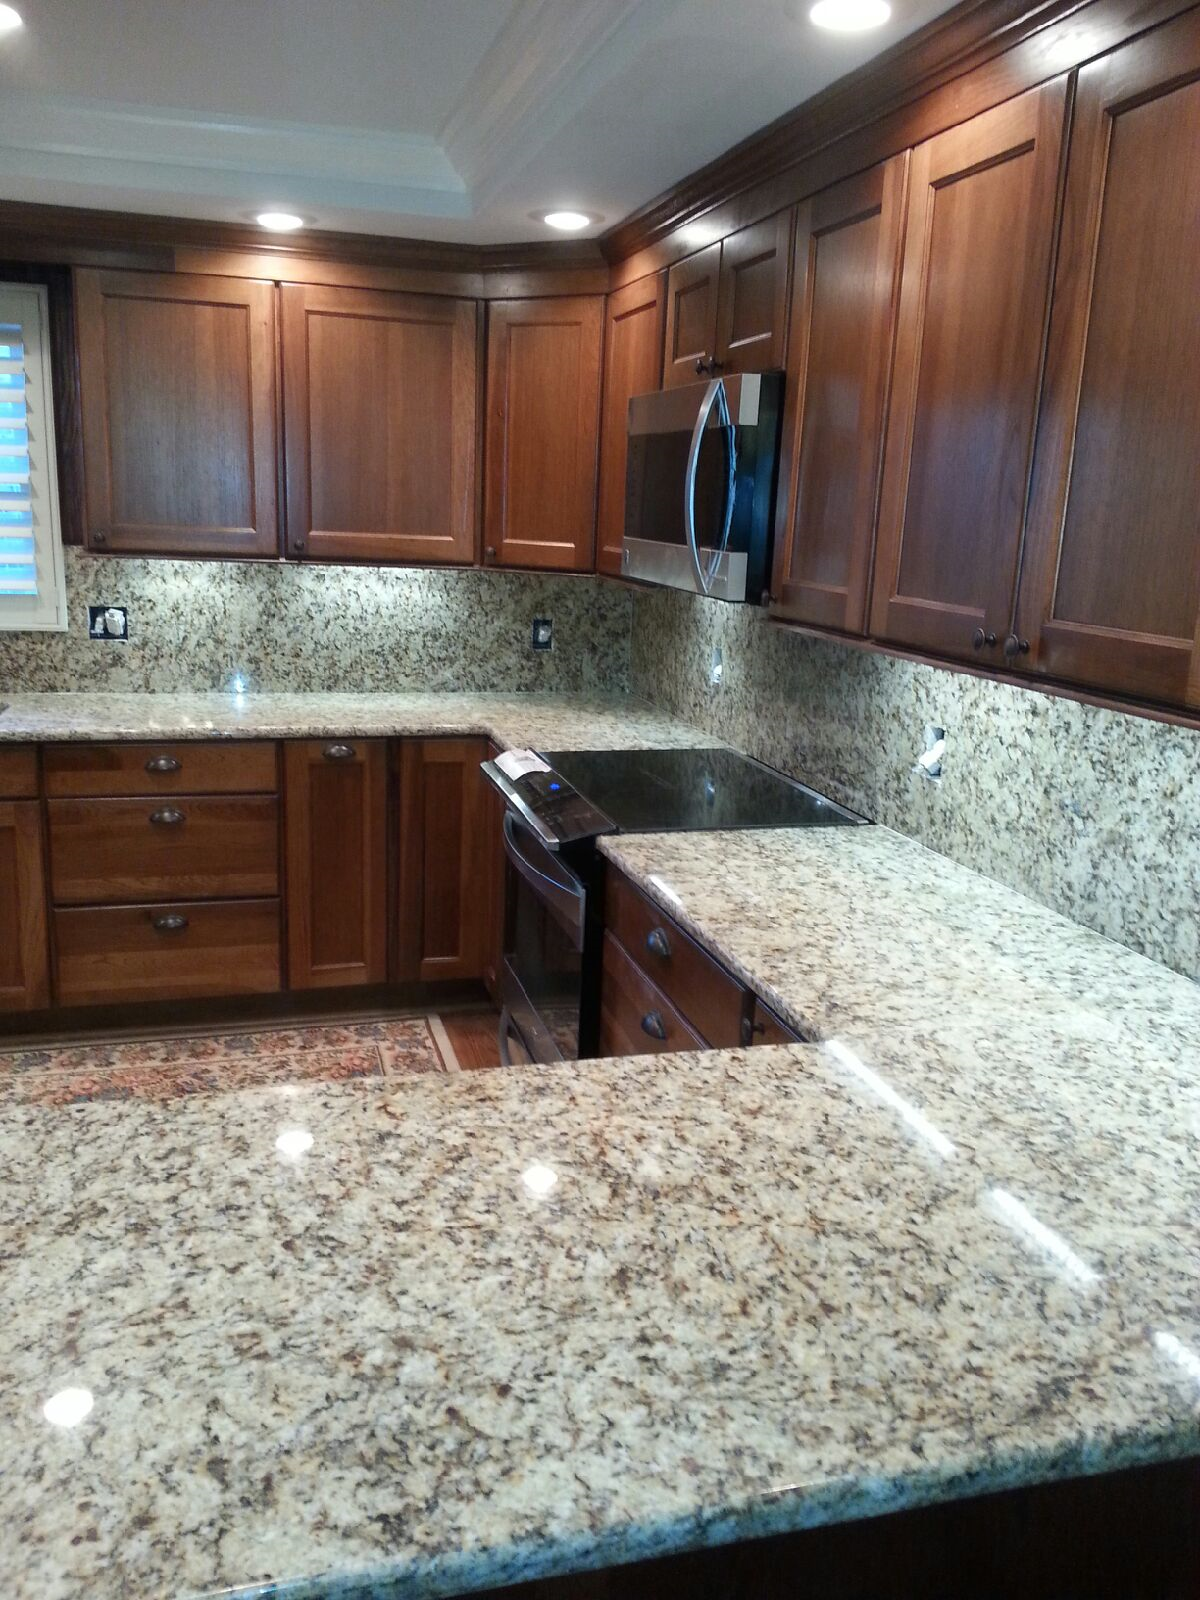 products slab diy granite swatch en stone tiles countertops natural tile countertop alaska slabs arizona